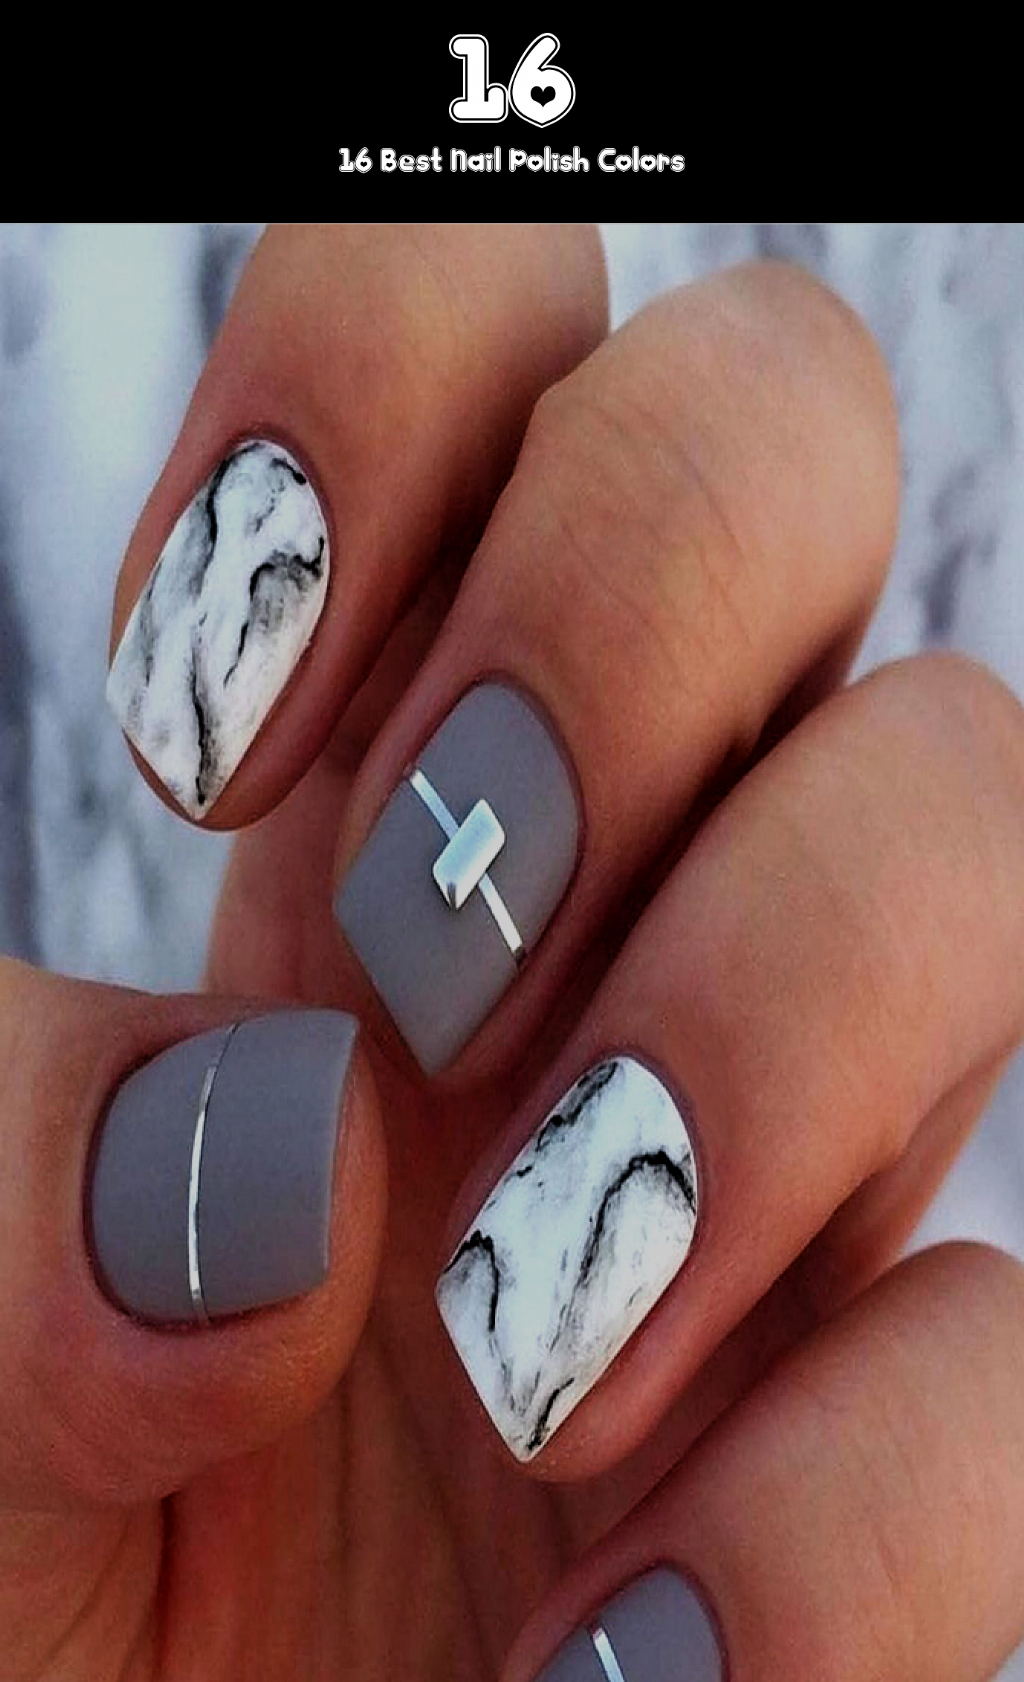 50 Most Amazing Ombre Nail Art Designs -     purple Acrylic short square nails design for summer nails, french manicures, short nails design, acrylic nails design, square nails design, summer nails, spring nails, simple short nails, natural short nails, glitter nails, #Nails #ShortNails #AcrylicNails  - 💦 🏩 💦  #decoration #feature #homedecor